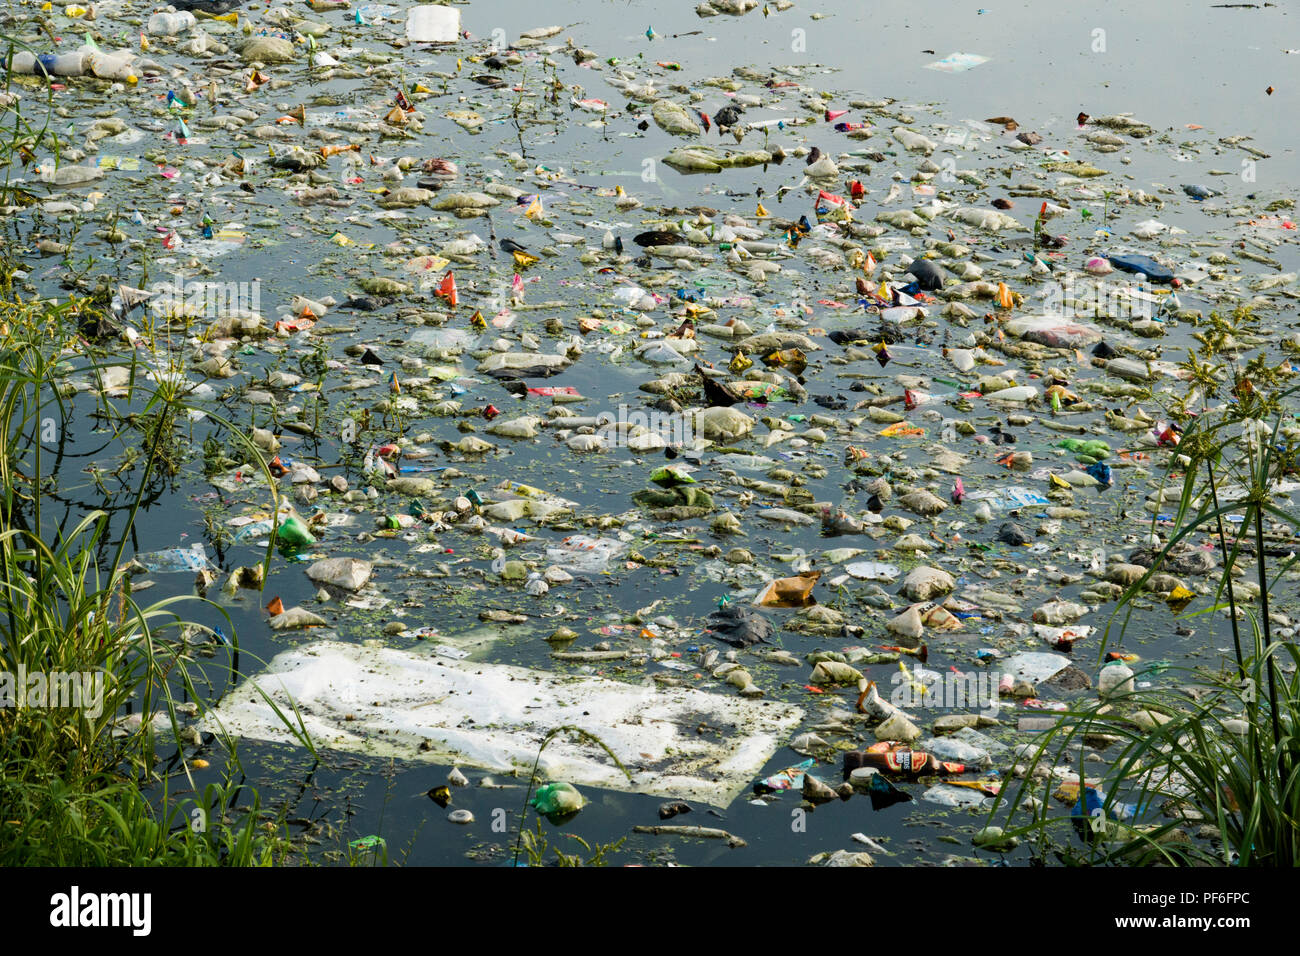 Plastic bags, bottles and other trash in Lake Pichola, Udaipur, India - Stock Image